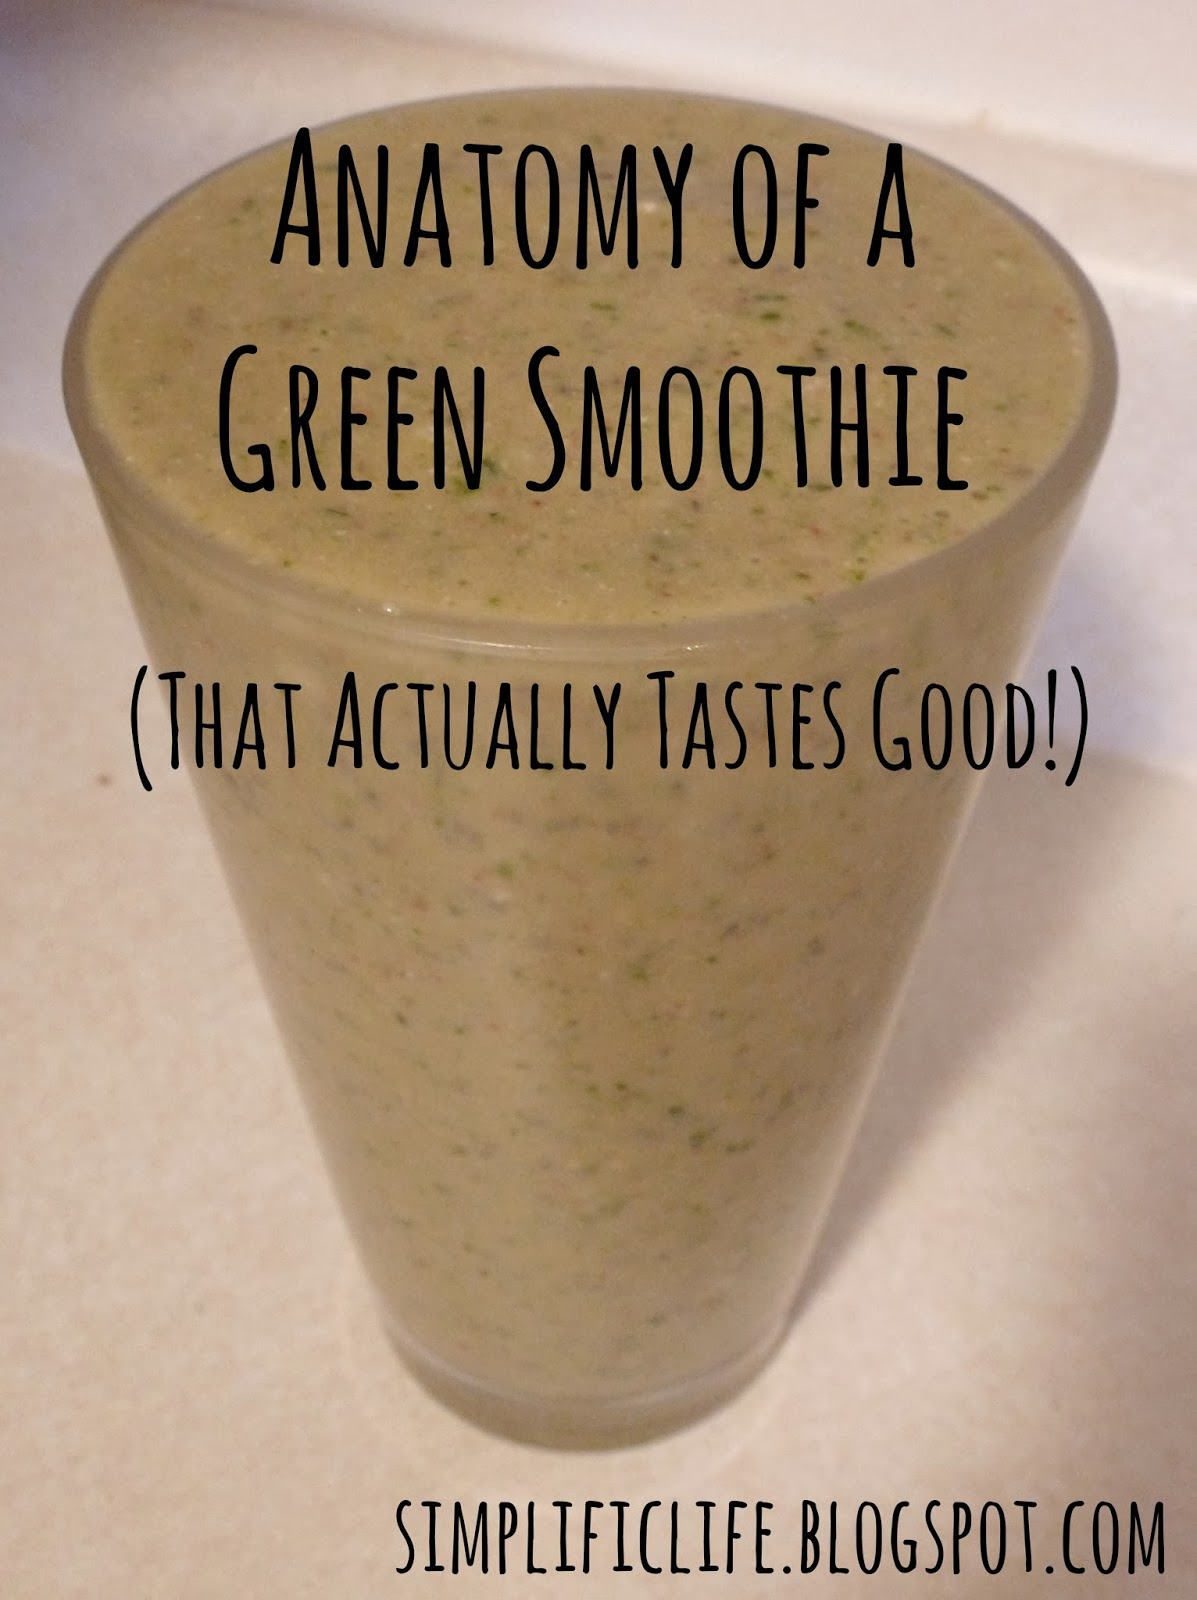 The Simple Life: Anatomy of a Green Smoothie- That Actually Tastes Good!